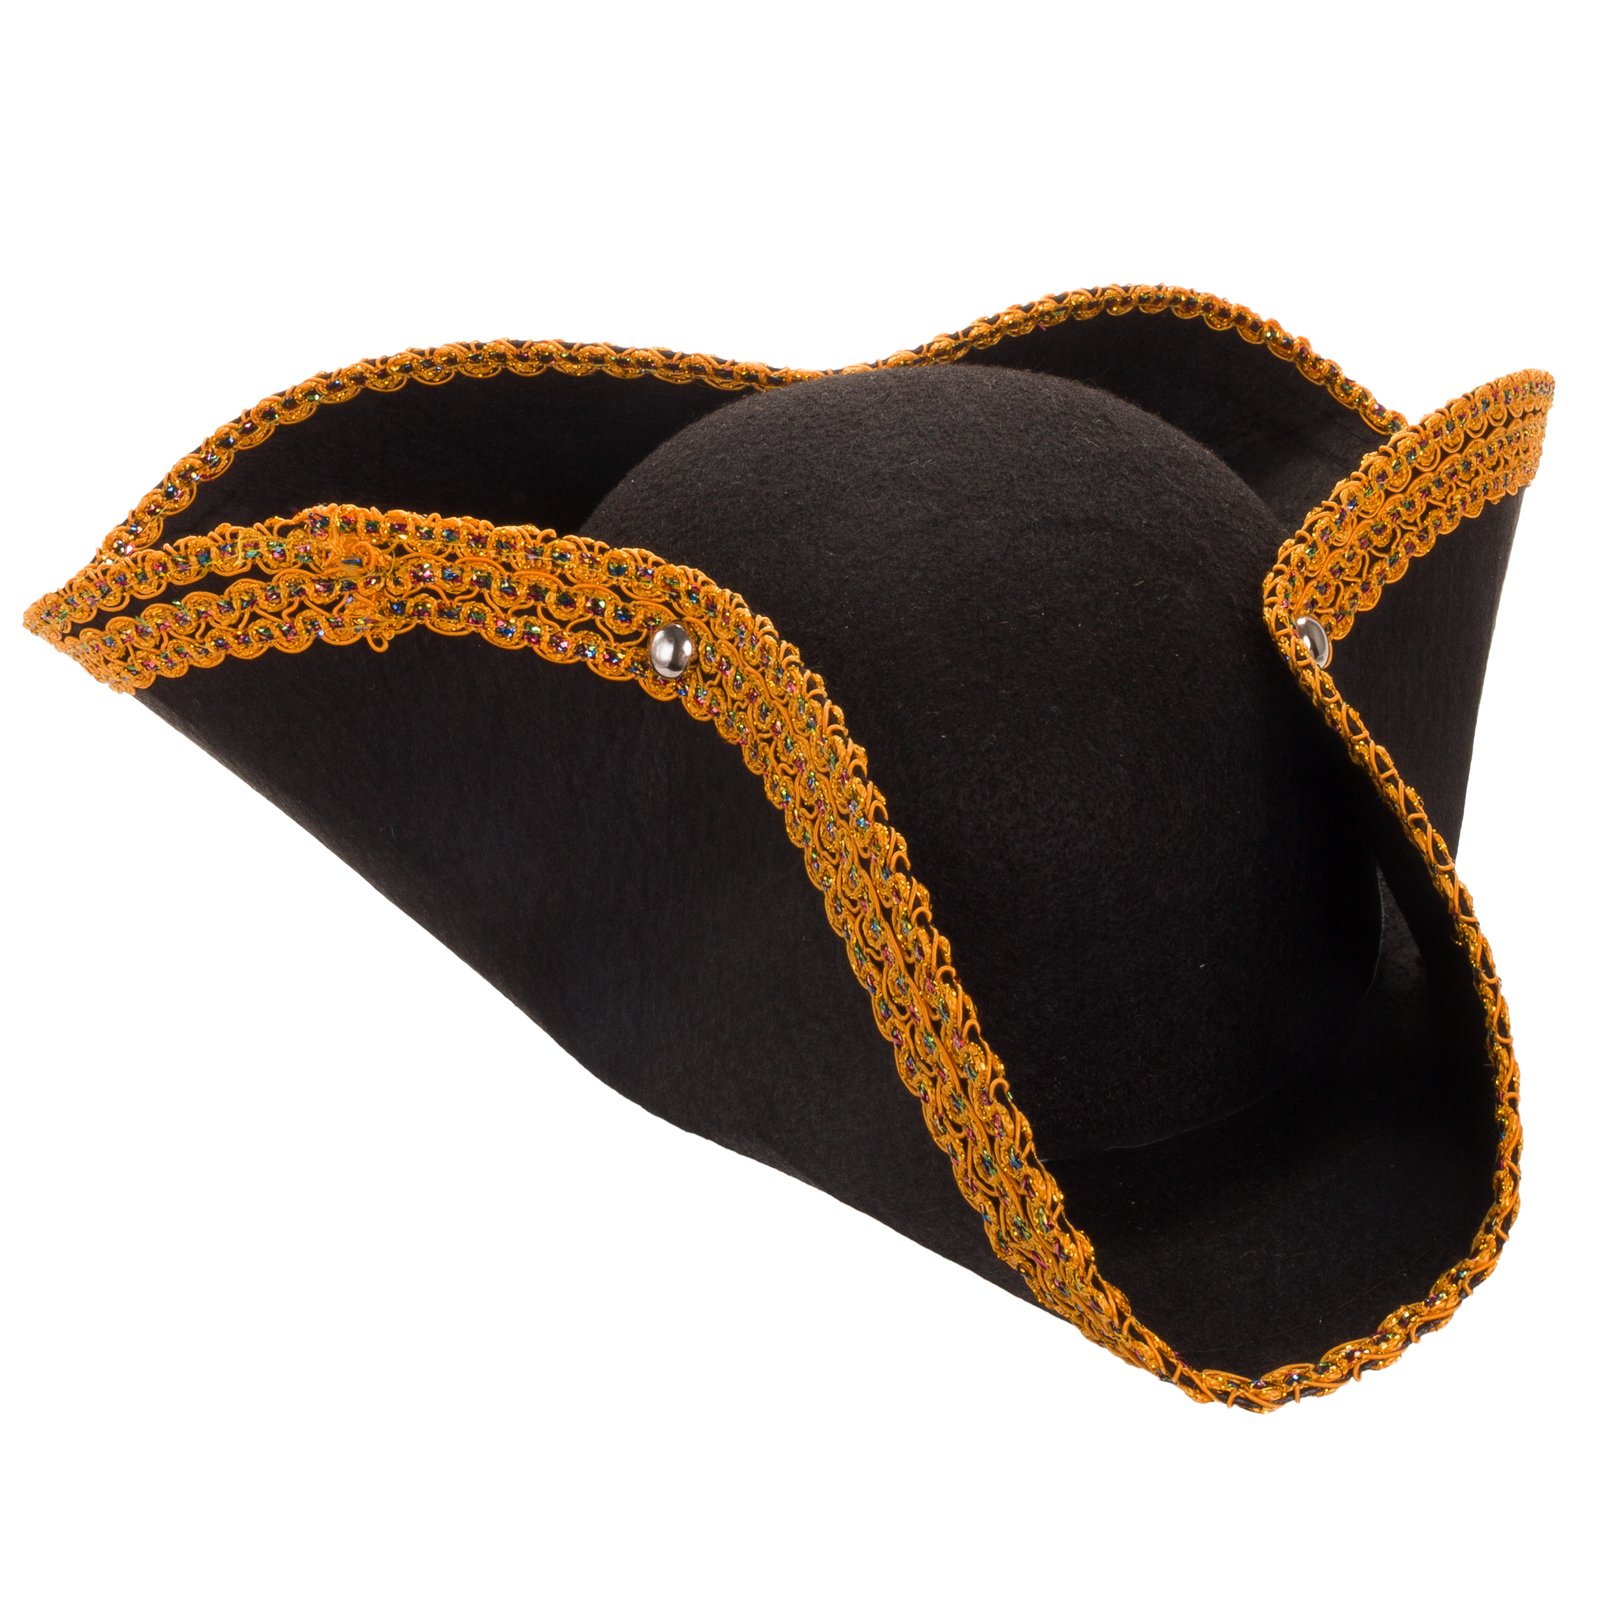 colonial hat template - the gallery for pilgrim bonnet template